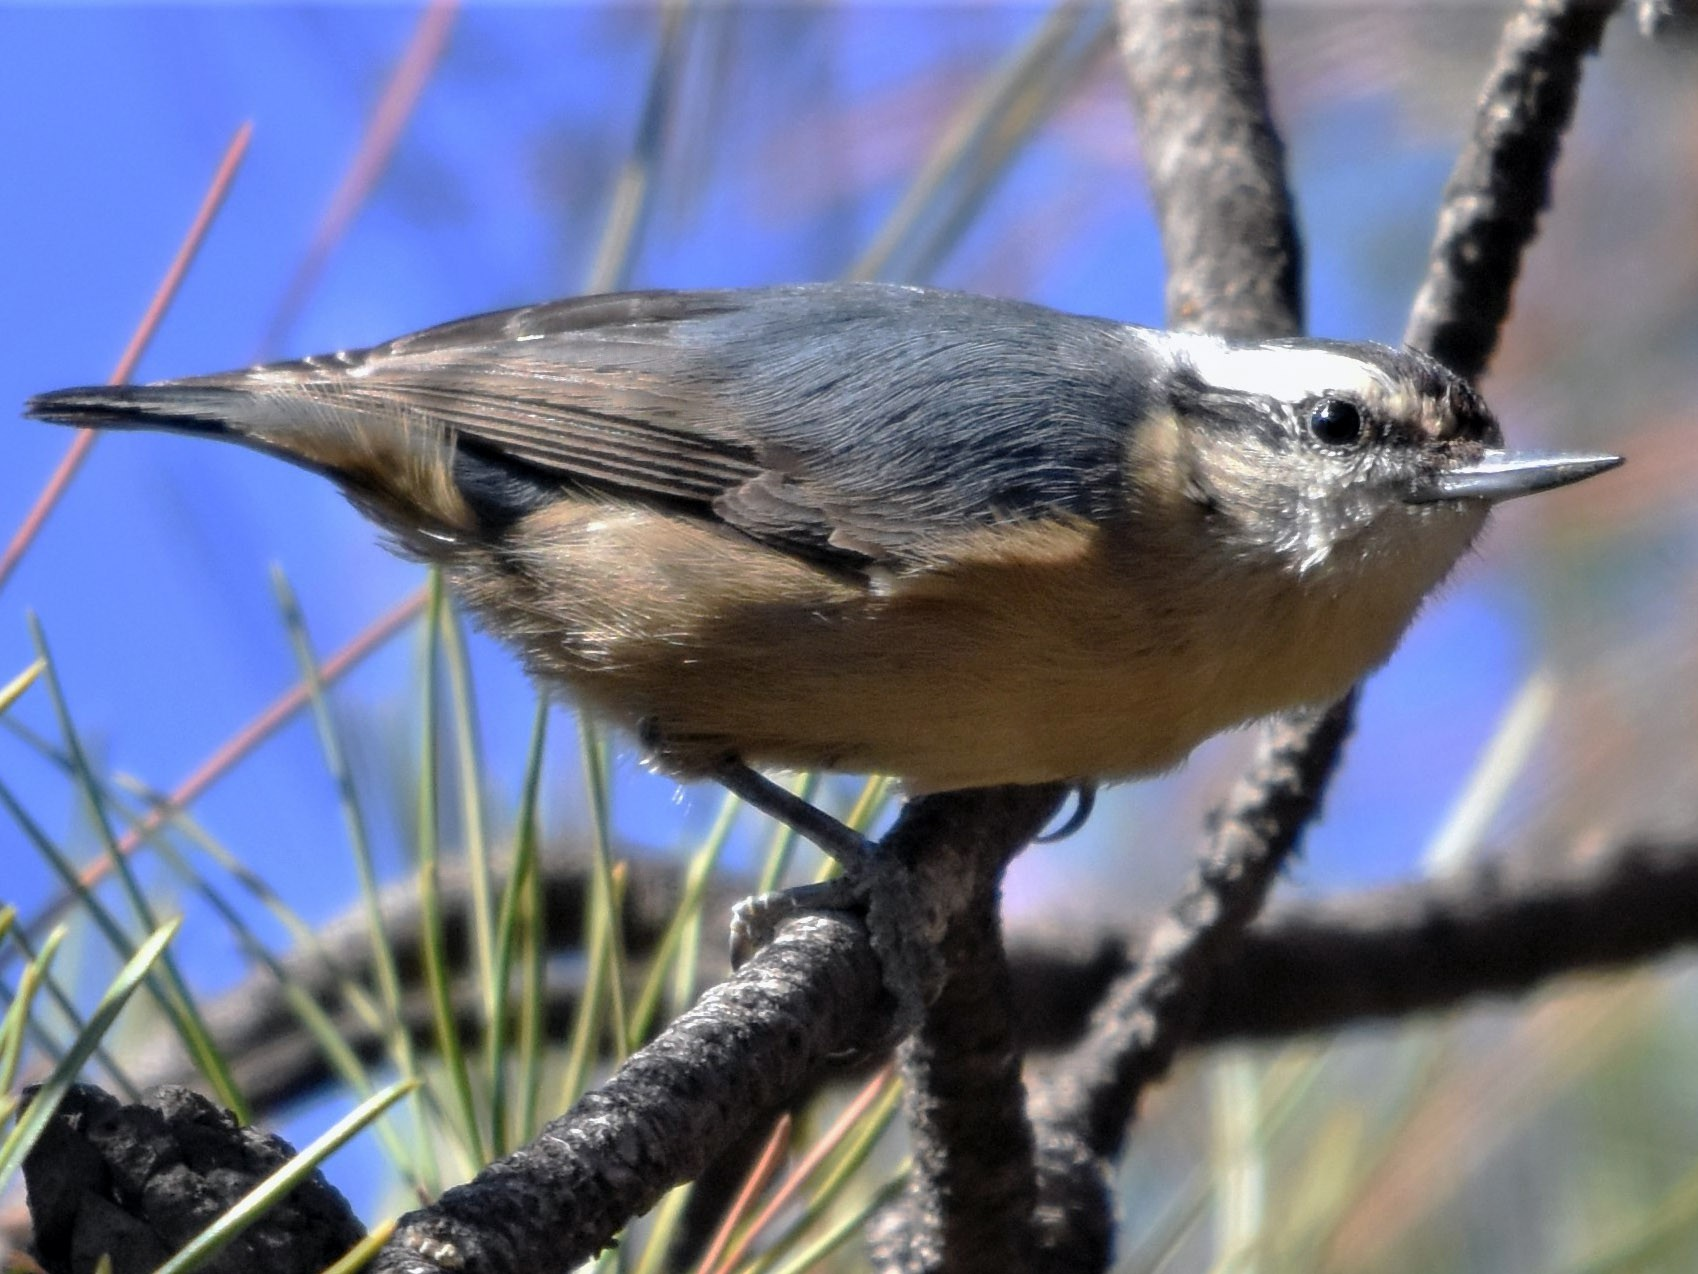 Snowy-browed Nuthatch - Steve Bale